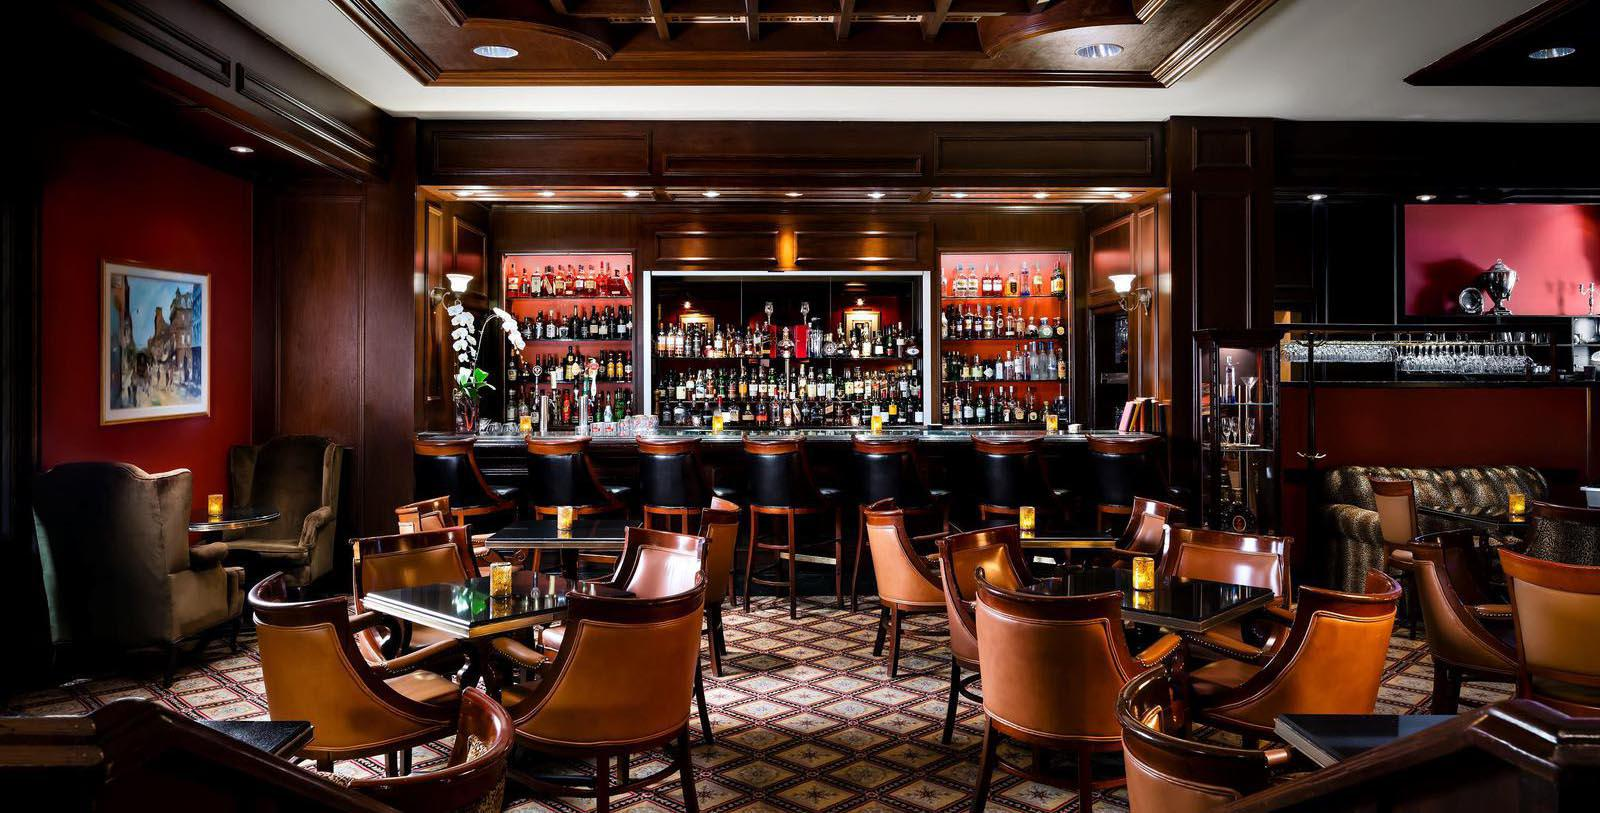 Image of the Library Bar of the Fairmont Royal York hotel in Toronto, Ontario, Canada